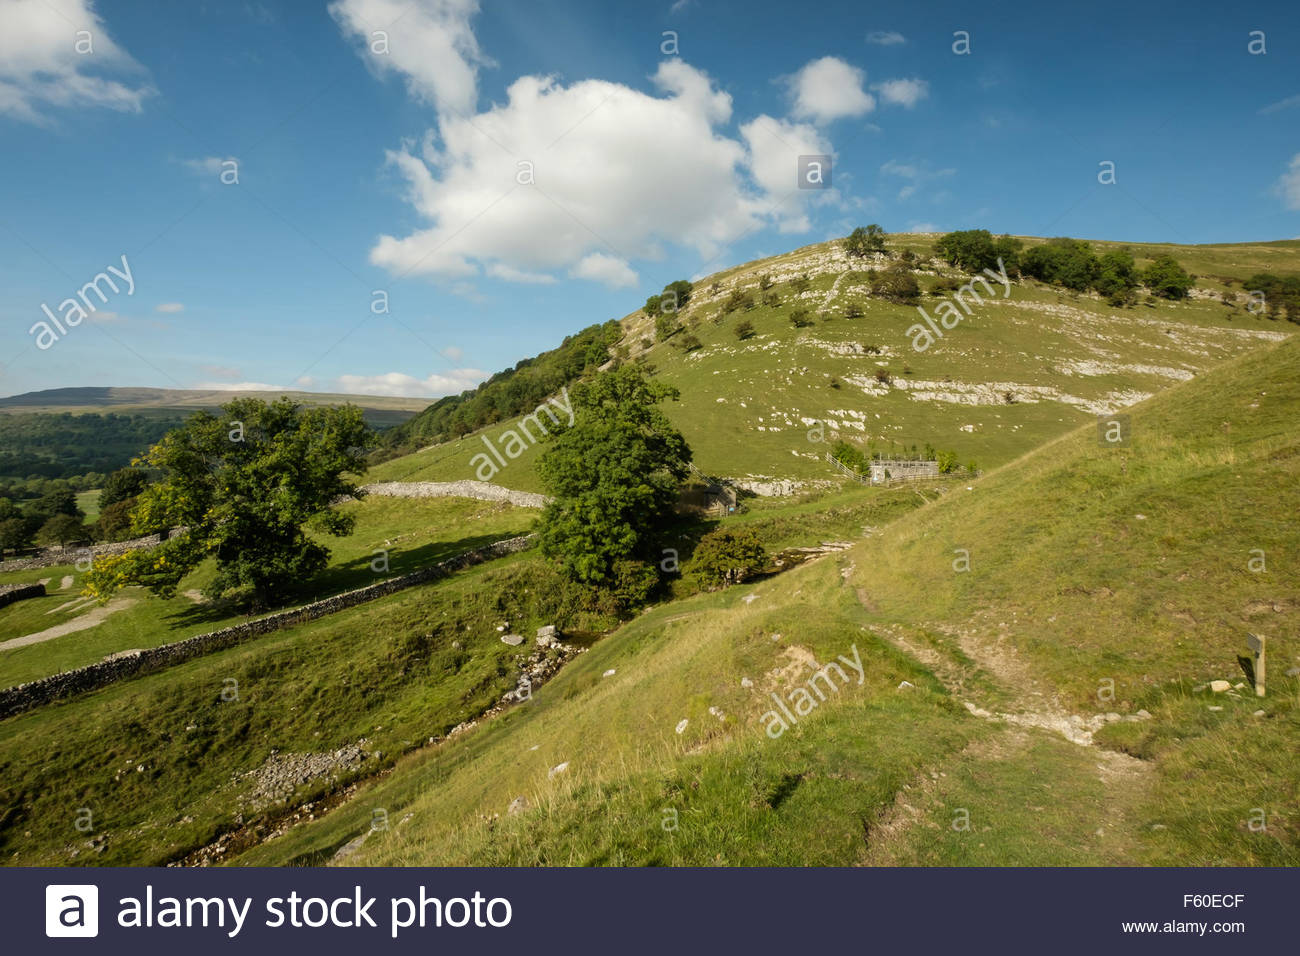 View of the hills above the village of Buckden, Wharfdale in the Yorkshire Dales, England on a sunny day in Autumn. - Stock Image